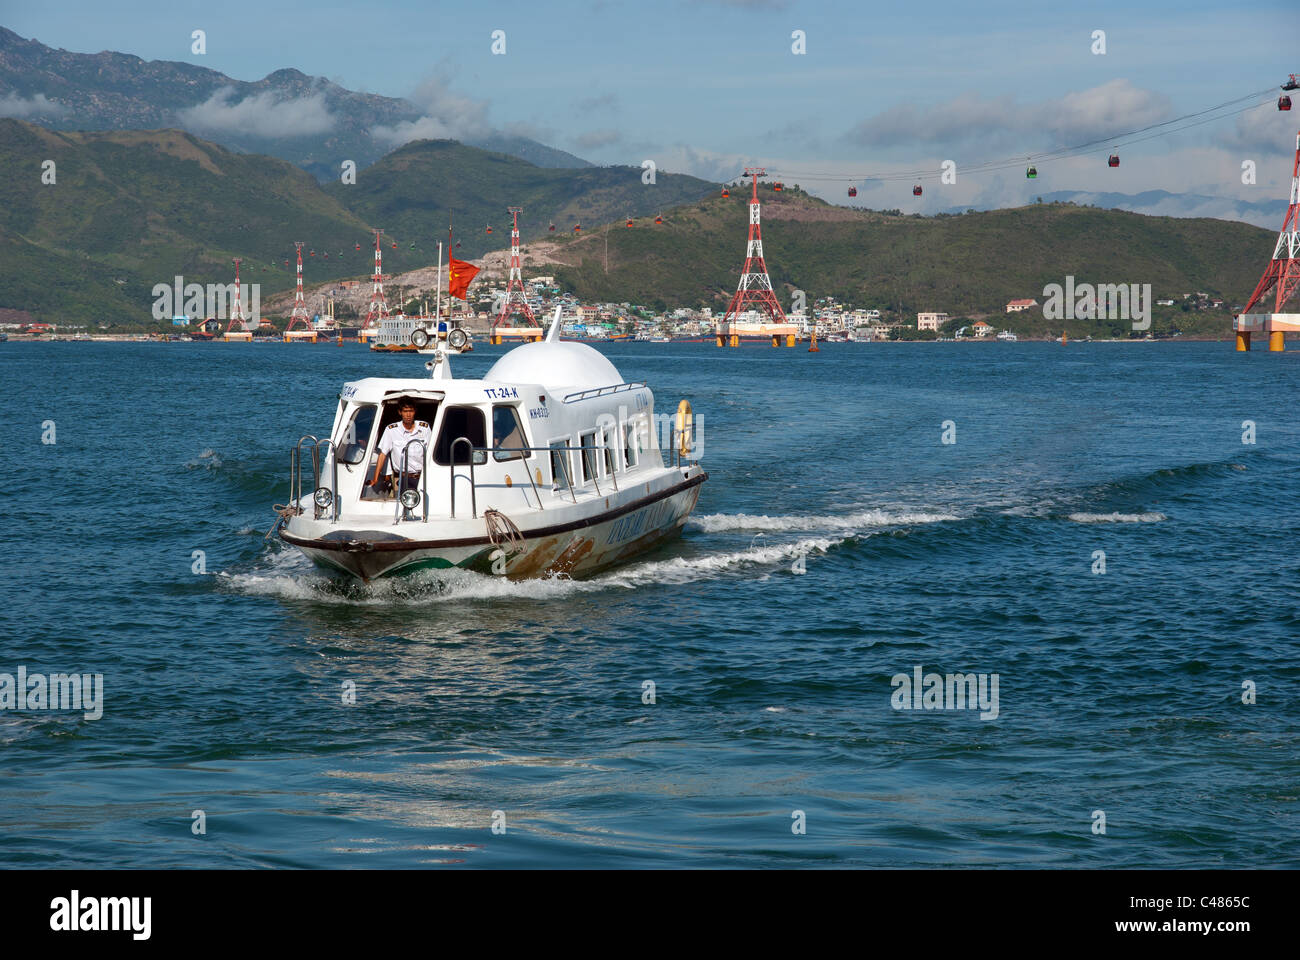 Modern hydrofoil transporting visitors from Nha Trang to Vinpearl, Vietnam - Stock Image